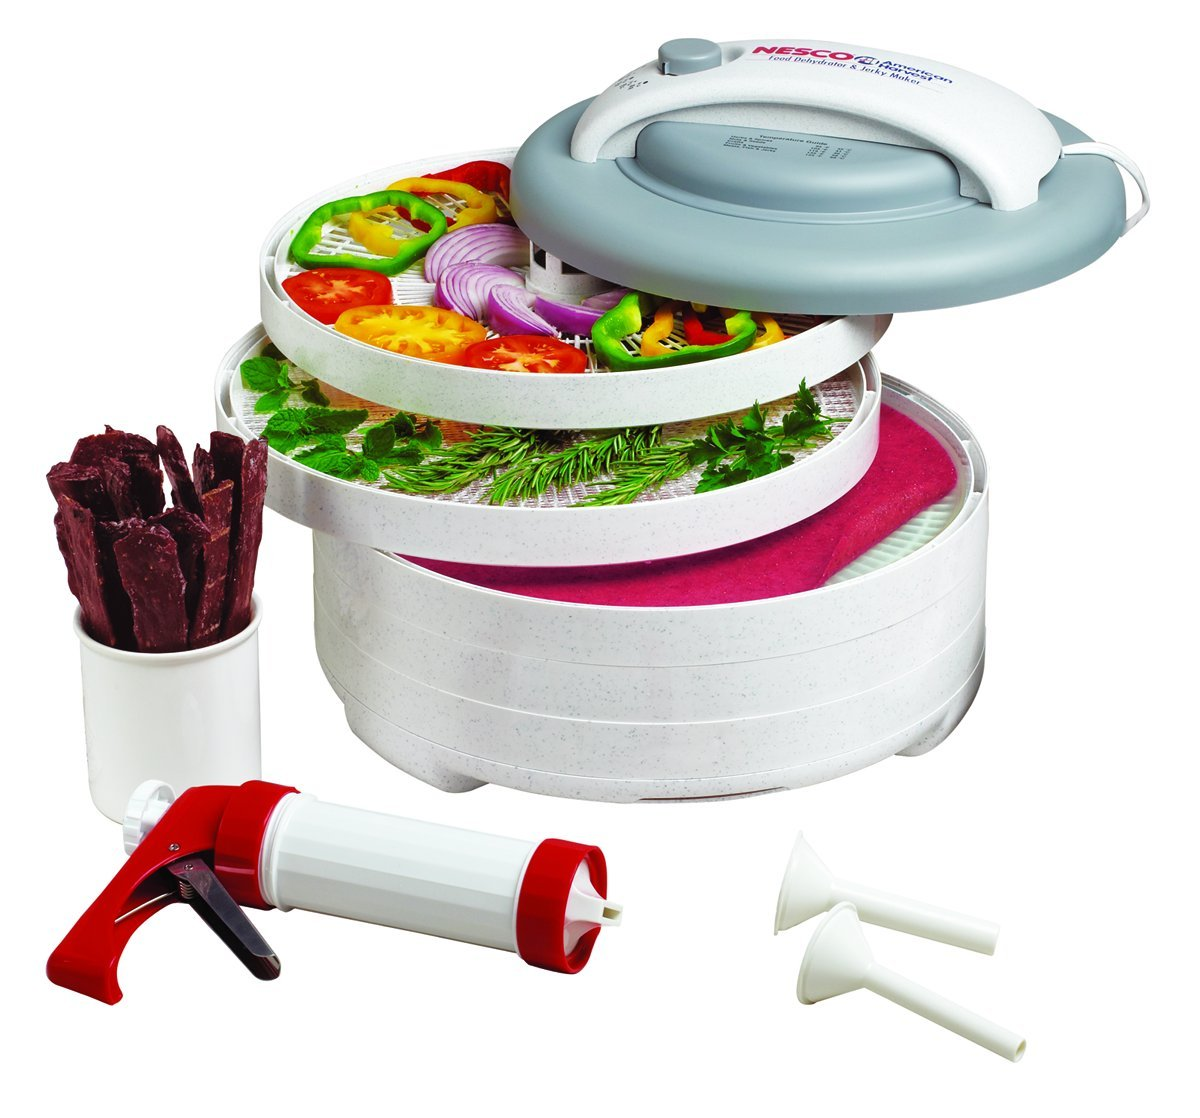 Amazon.com: Dehydrators - Specialty Appliances: Home & Kitchen